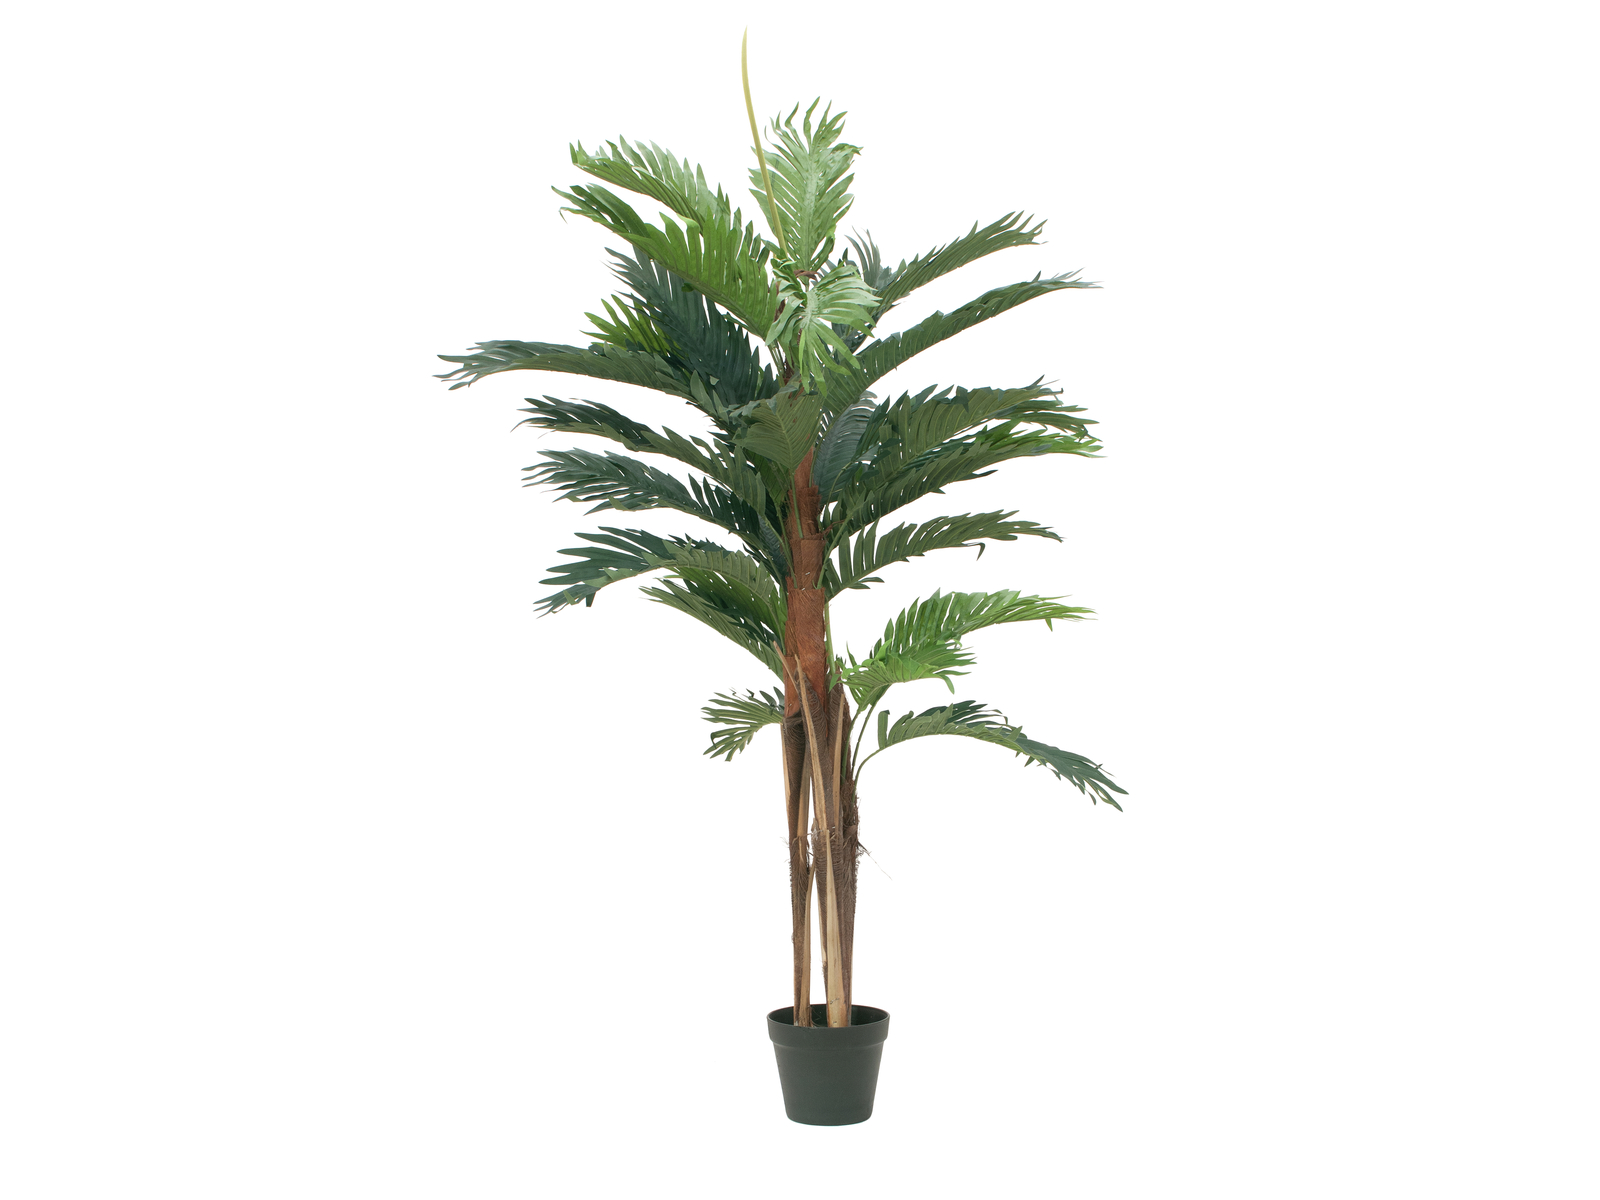 EUROPALMS Kentia di palme, piante artificiali, 120cm